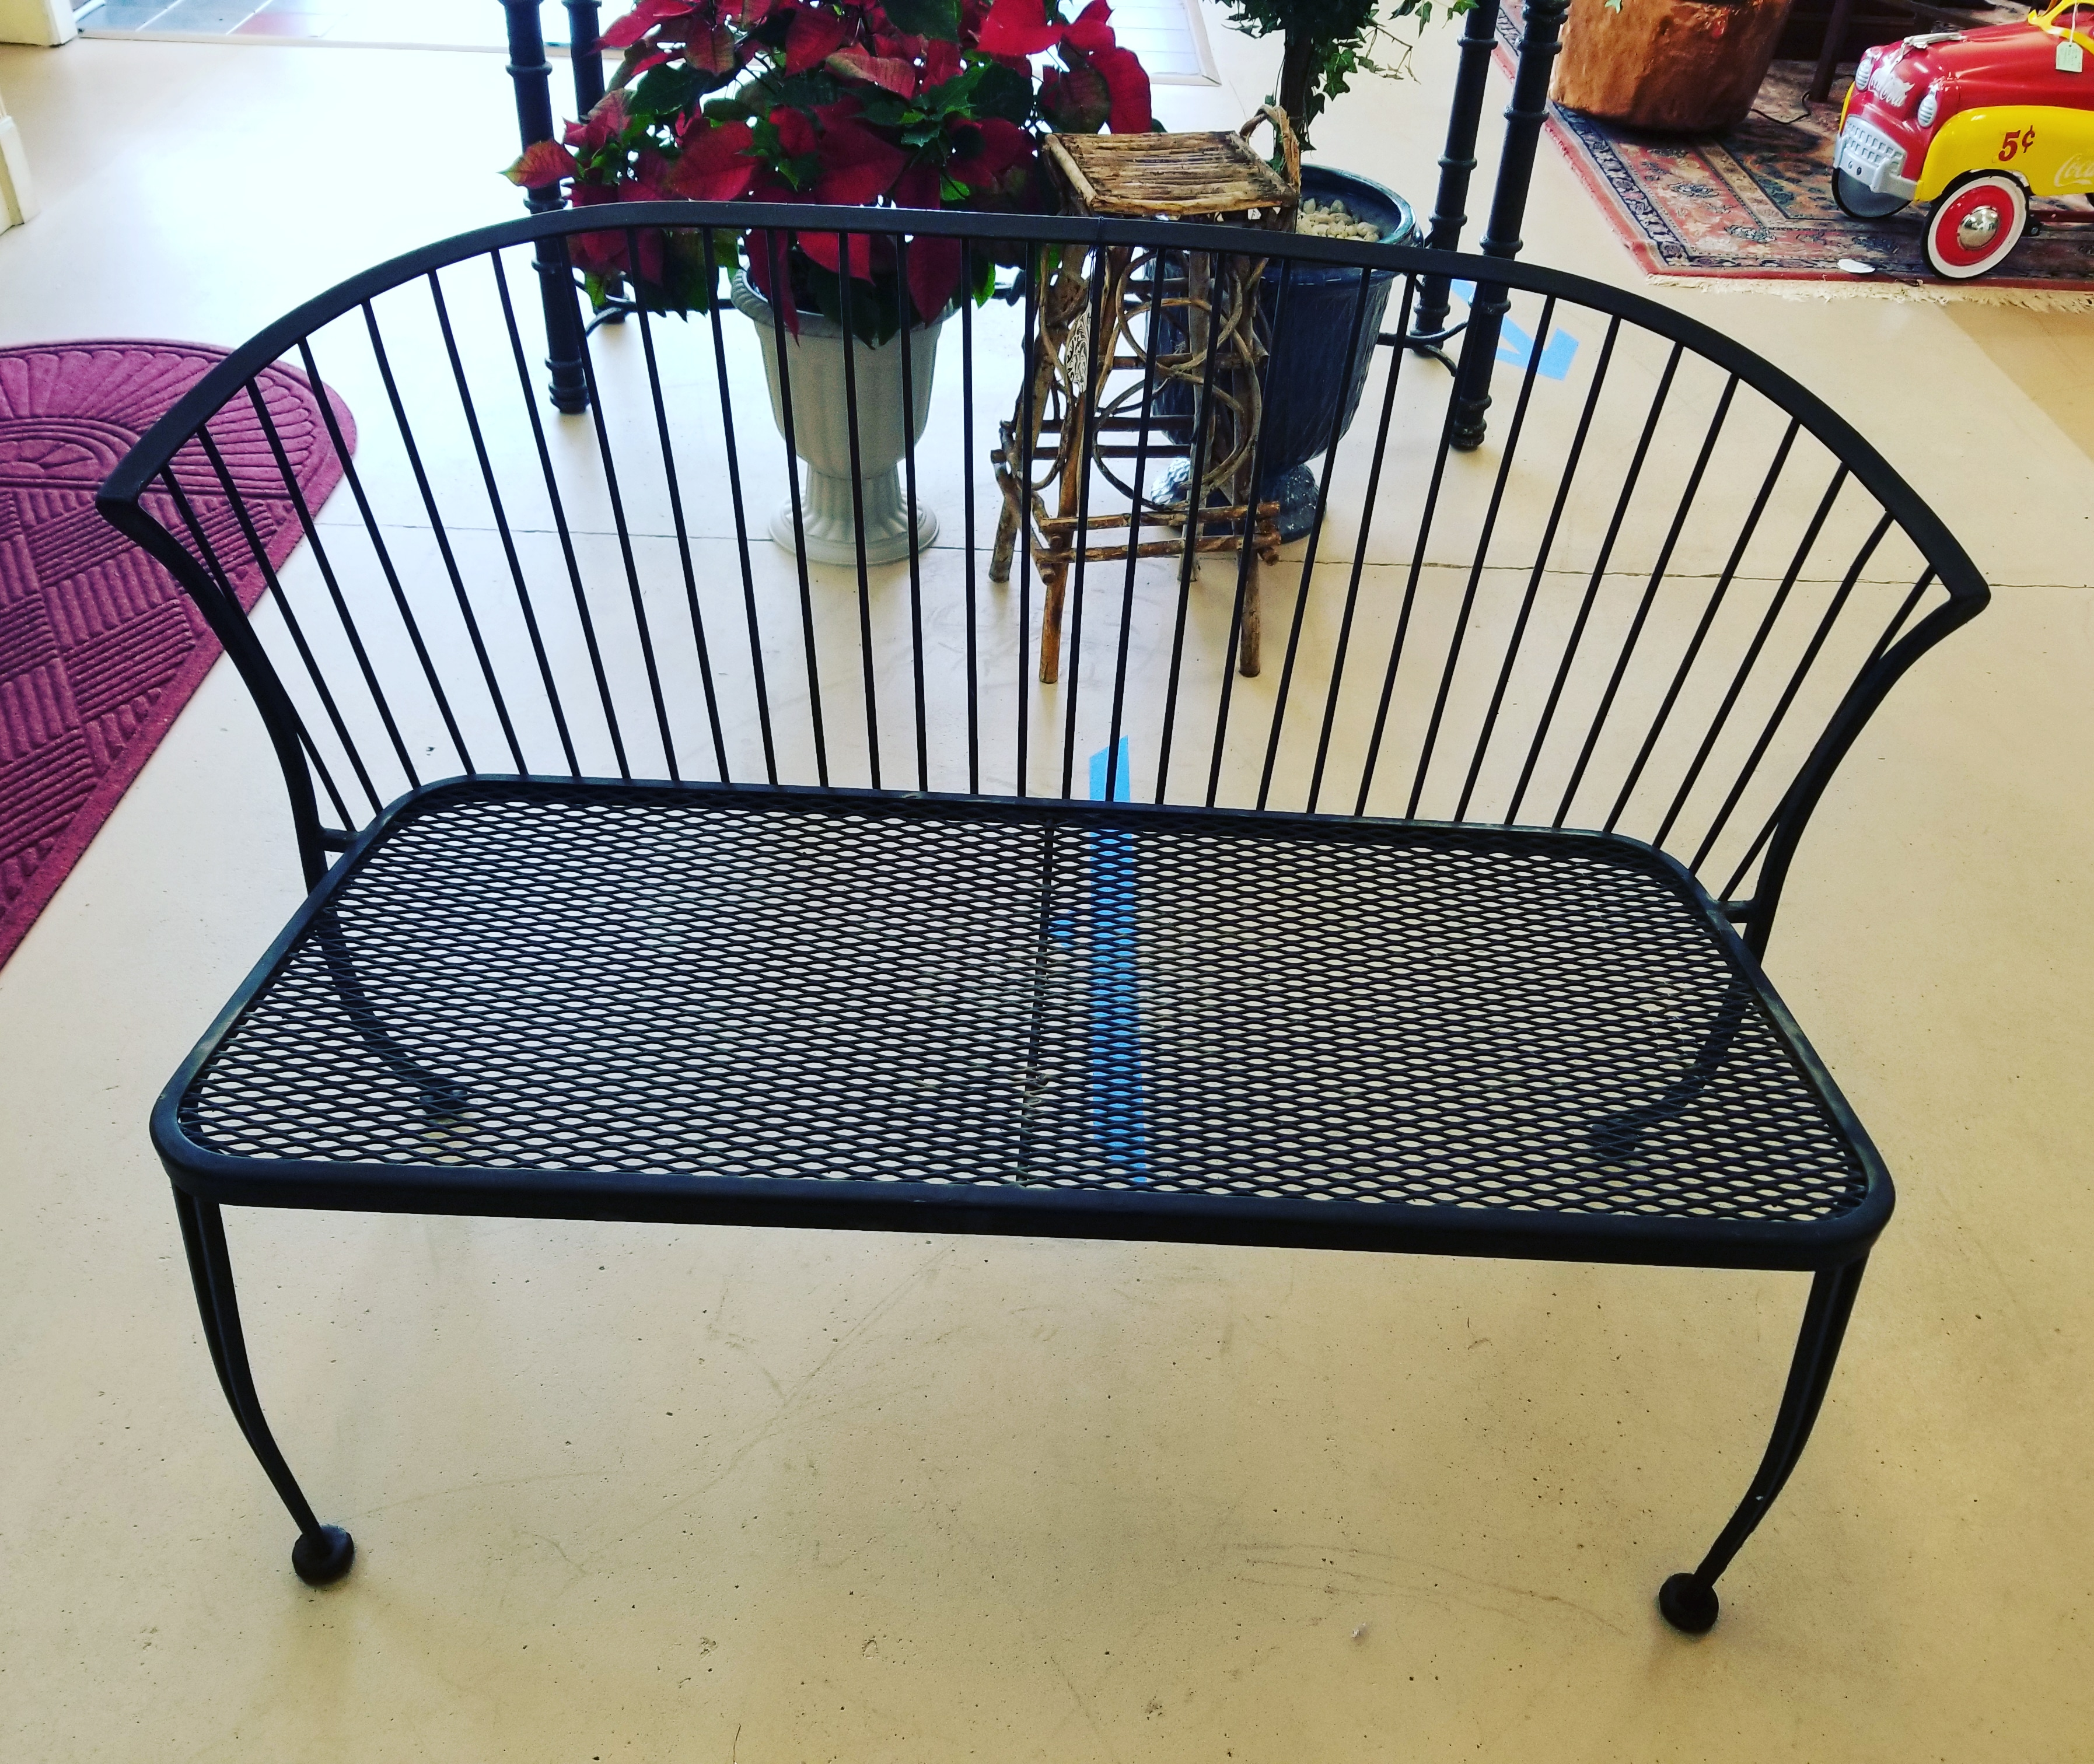 Wrought Iron Bench $185